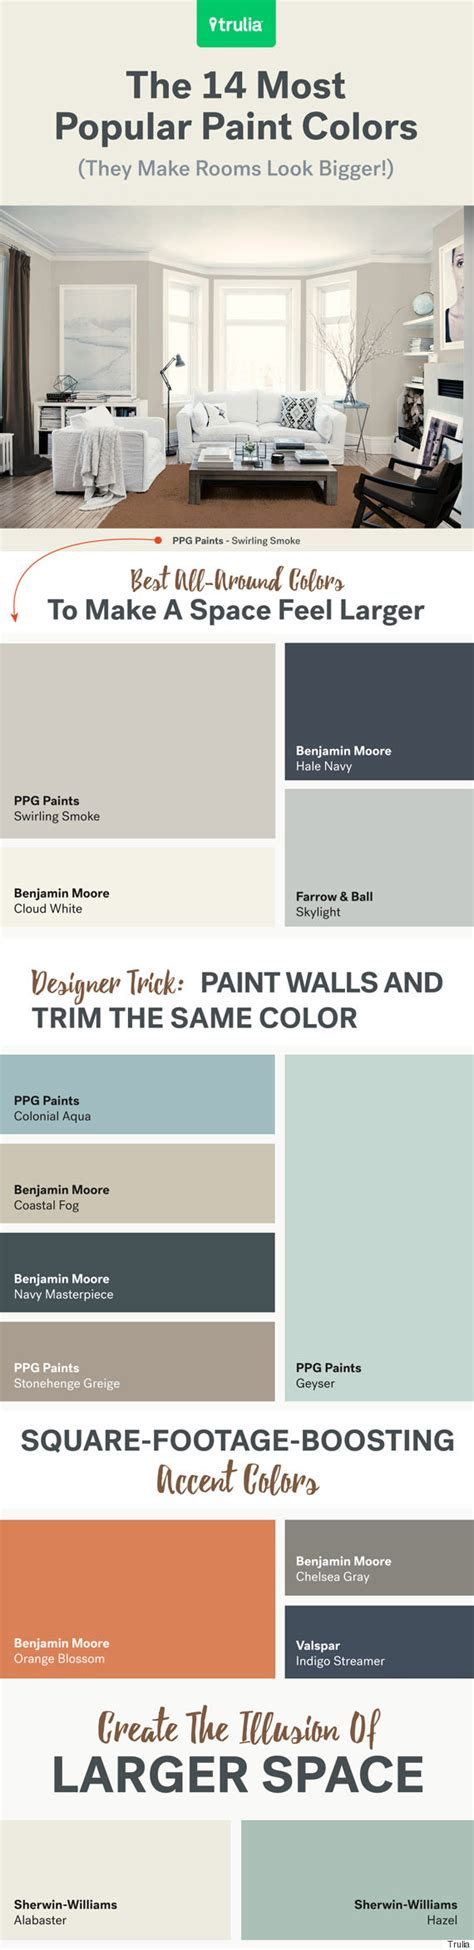 what paint colors make rooms look bigger the 14 most popular paint colors they make a room look